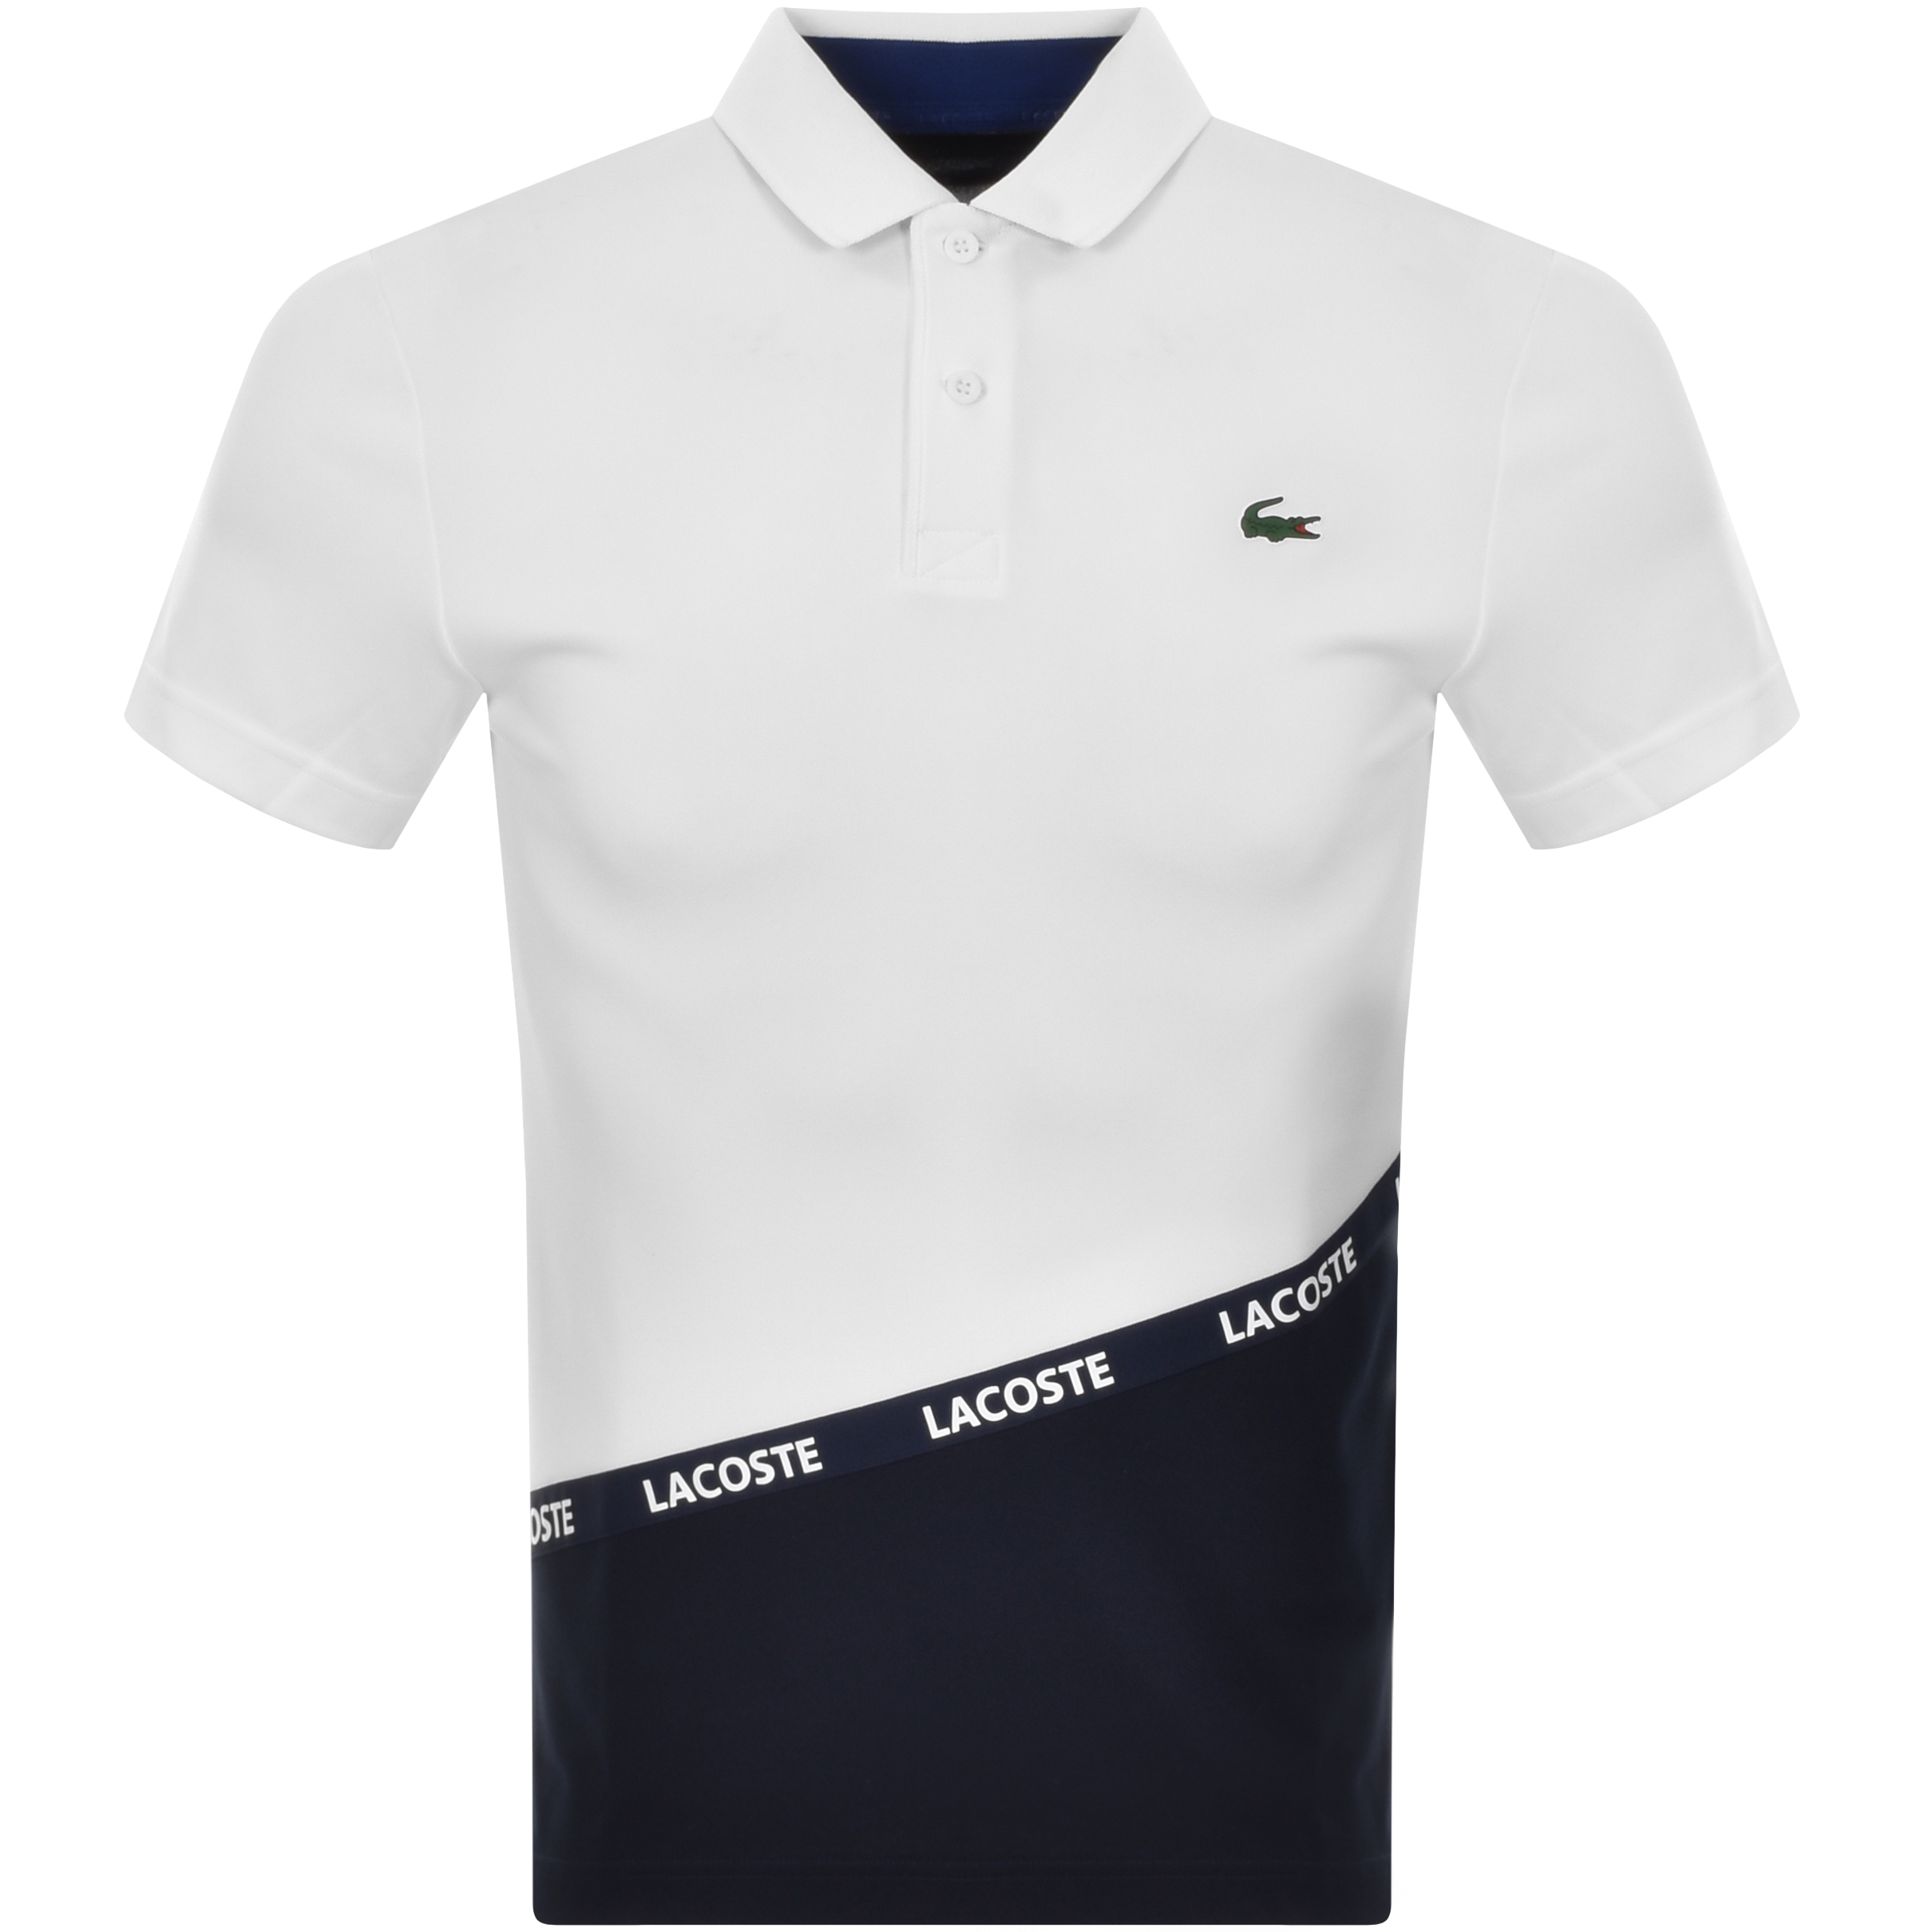 452c94fce Lacoste Sport Colour Block Polo T Shirt White